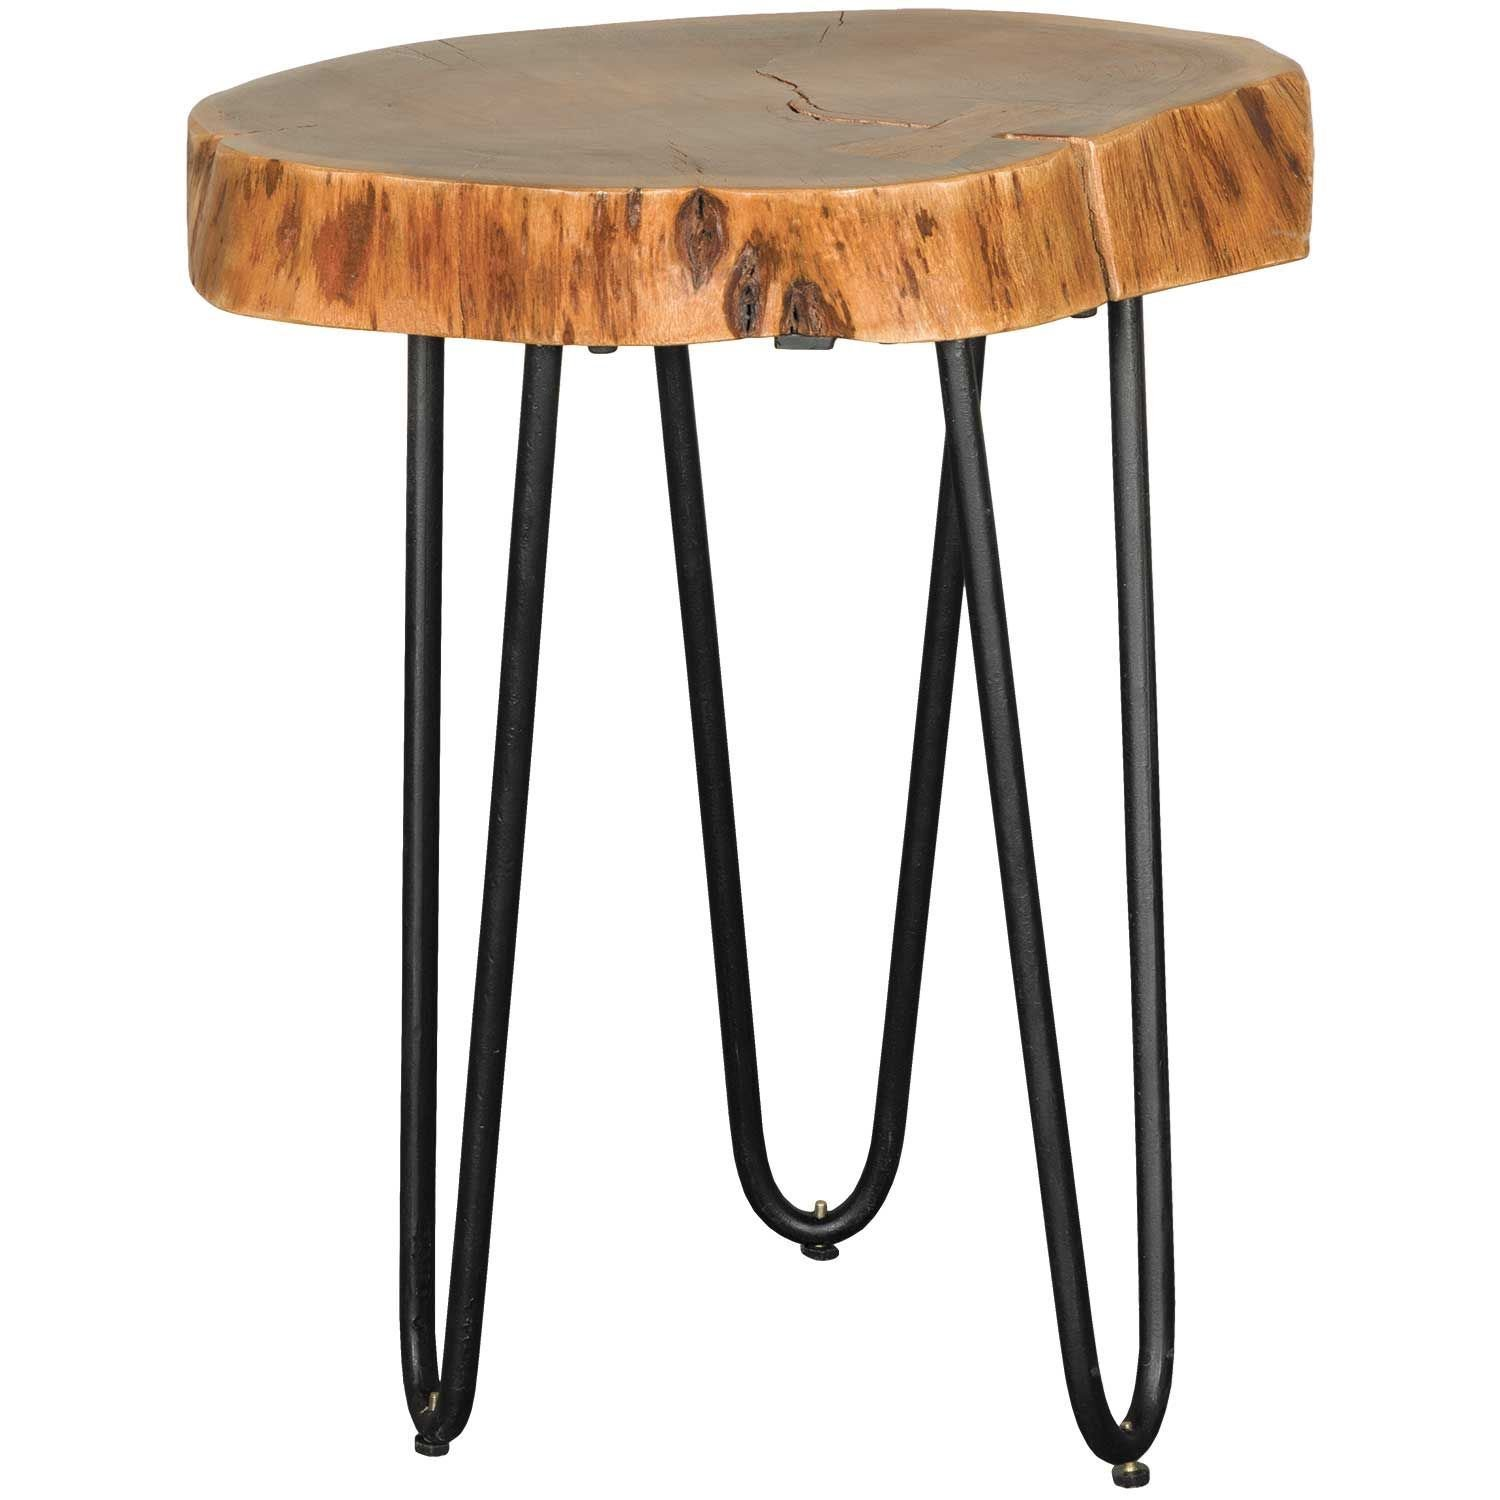 Vintage Iron Round Stump Side Table